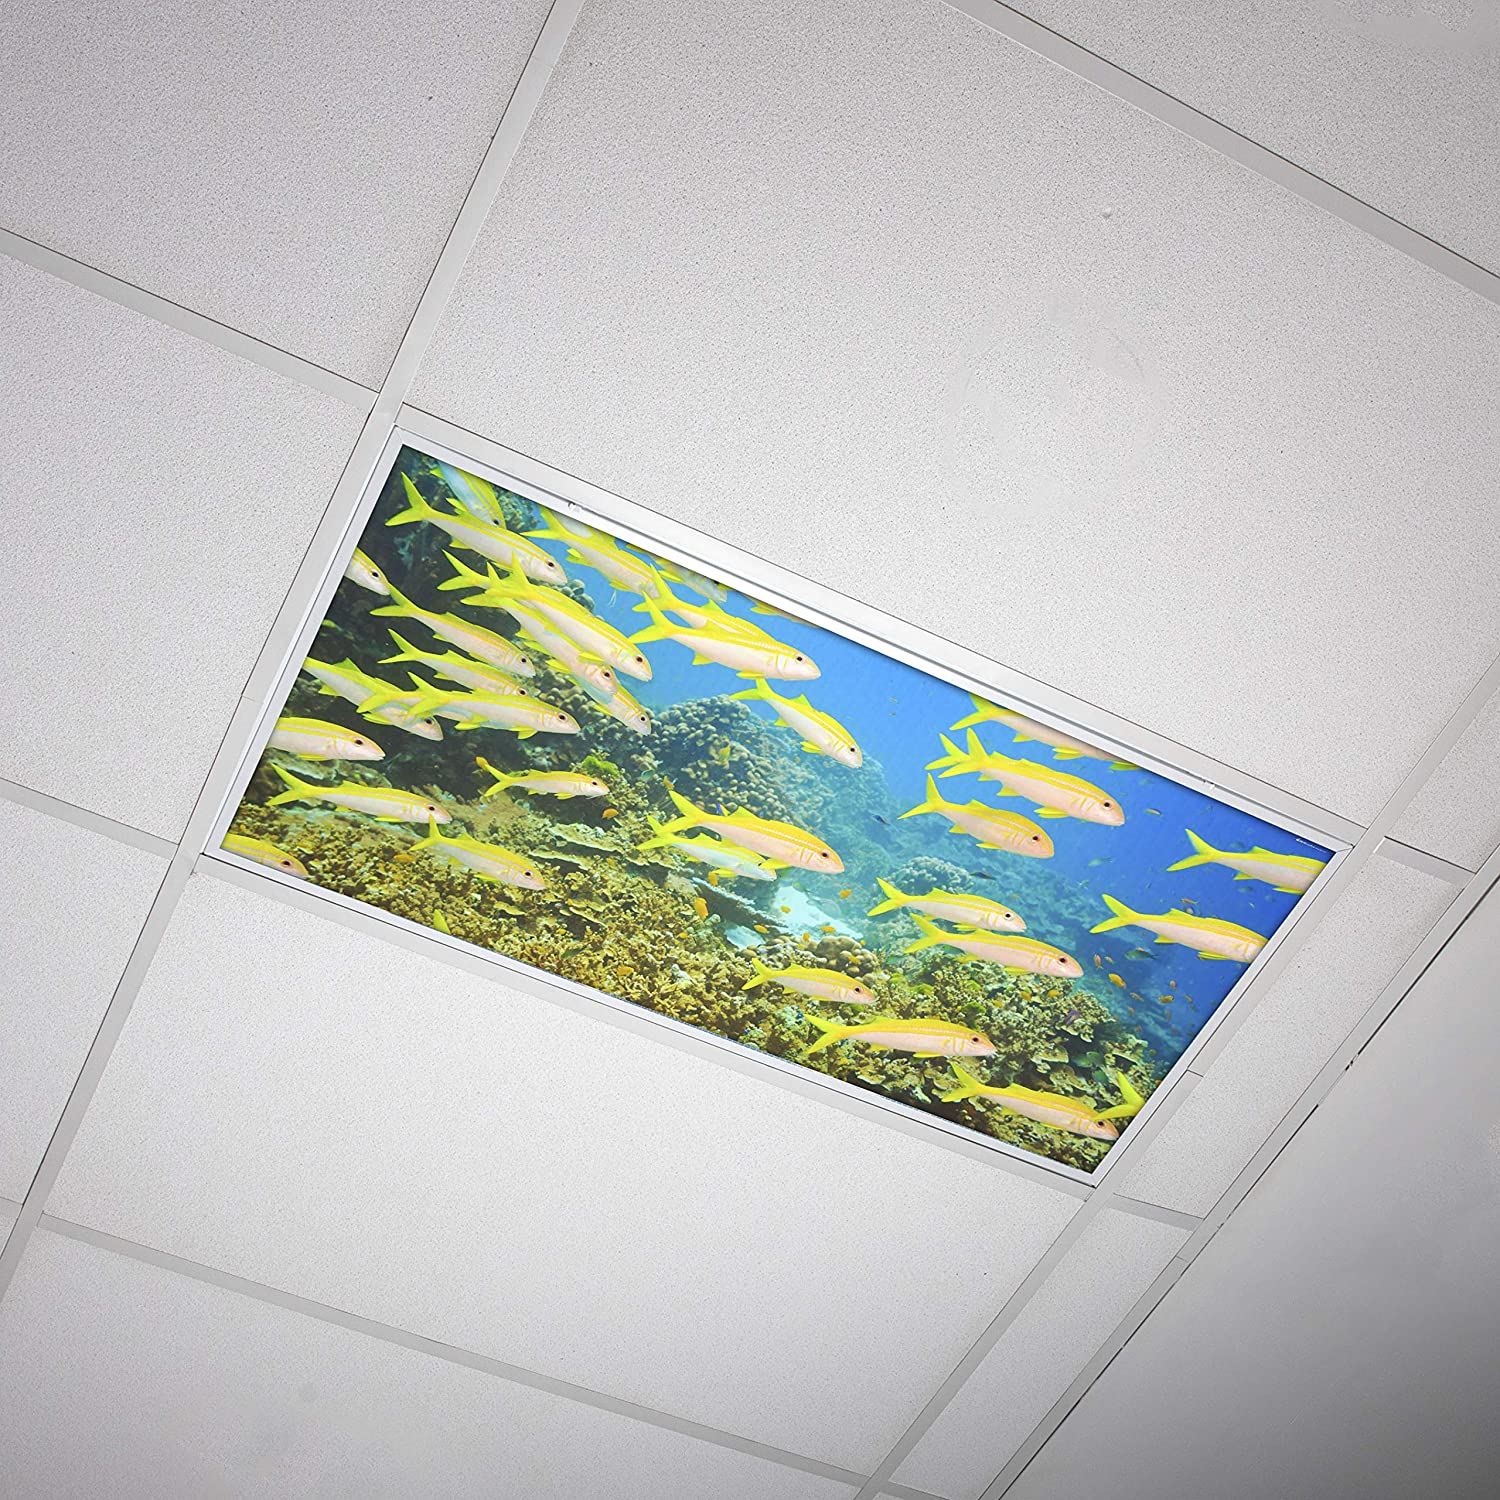 Octo Lights - Fluorescent Light Covers - 2x4 Flexible Decorative Light Diffuser Panels - Ocean - for Classrooms and Offices - Ocean 005